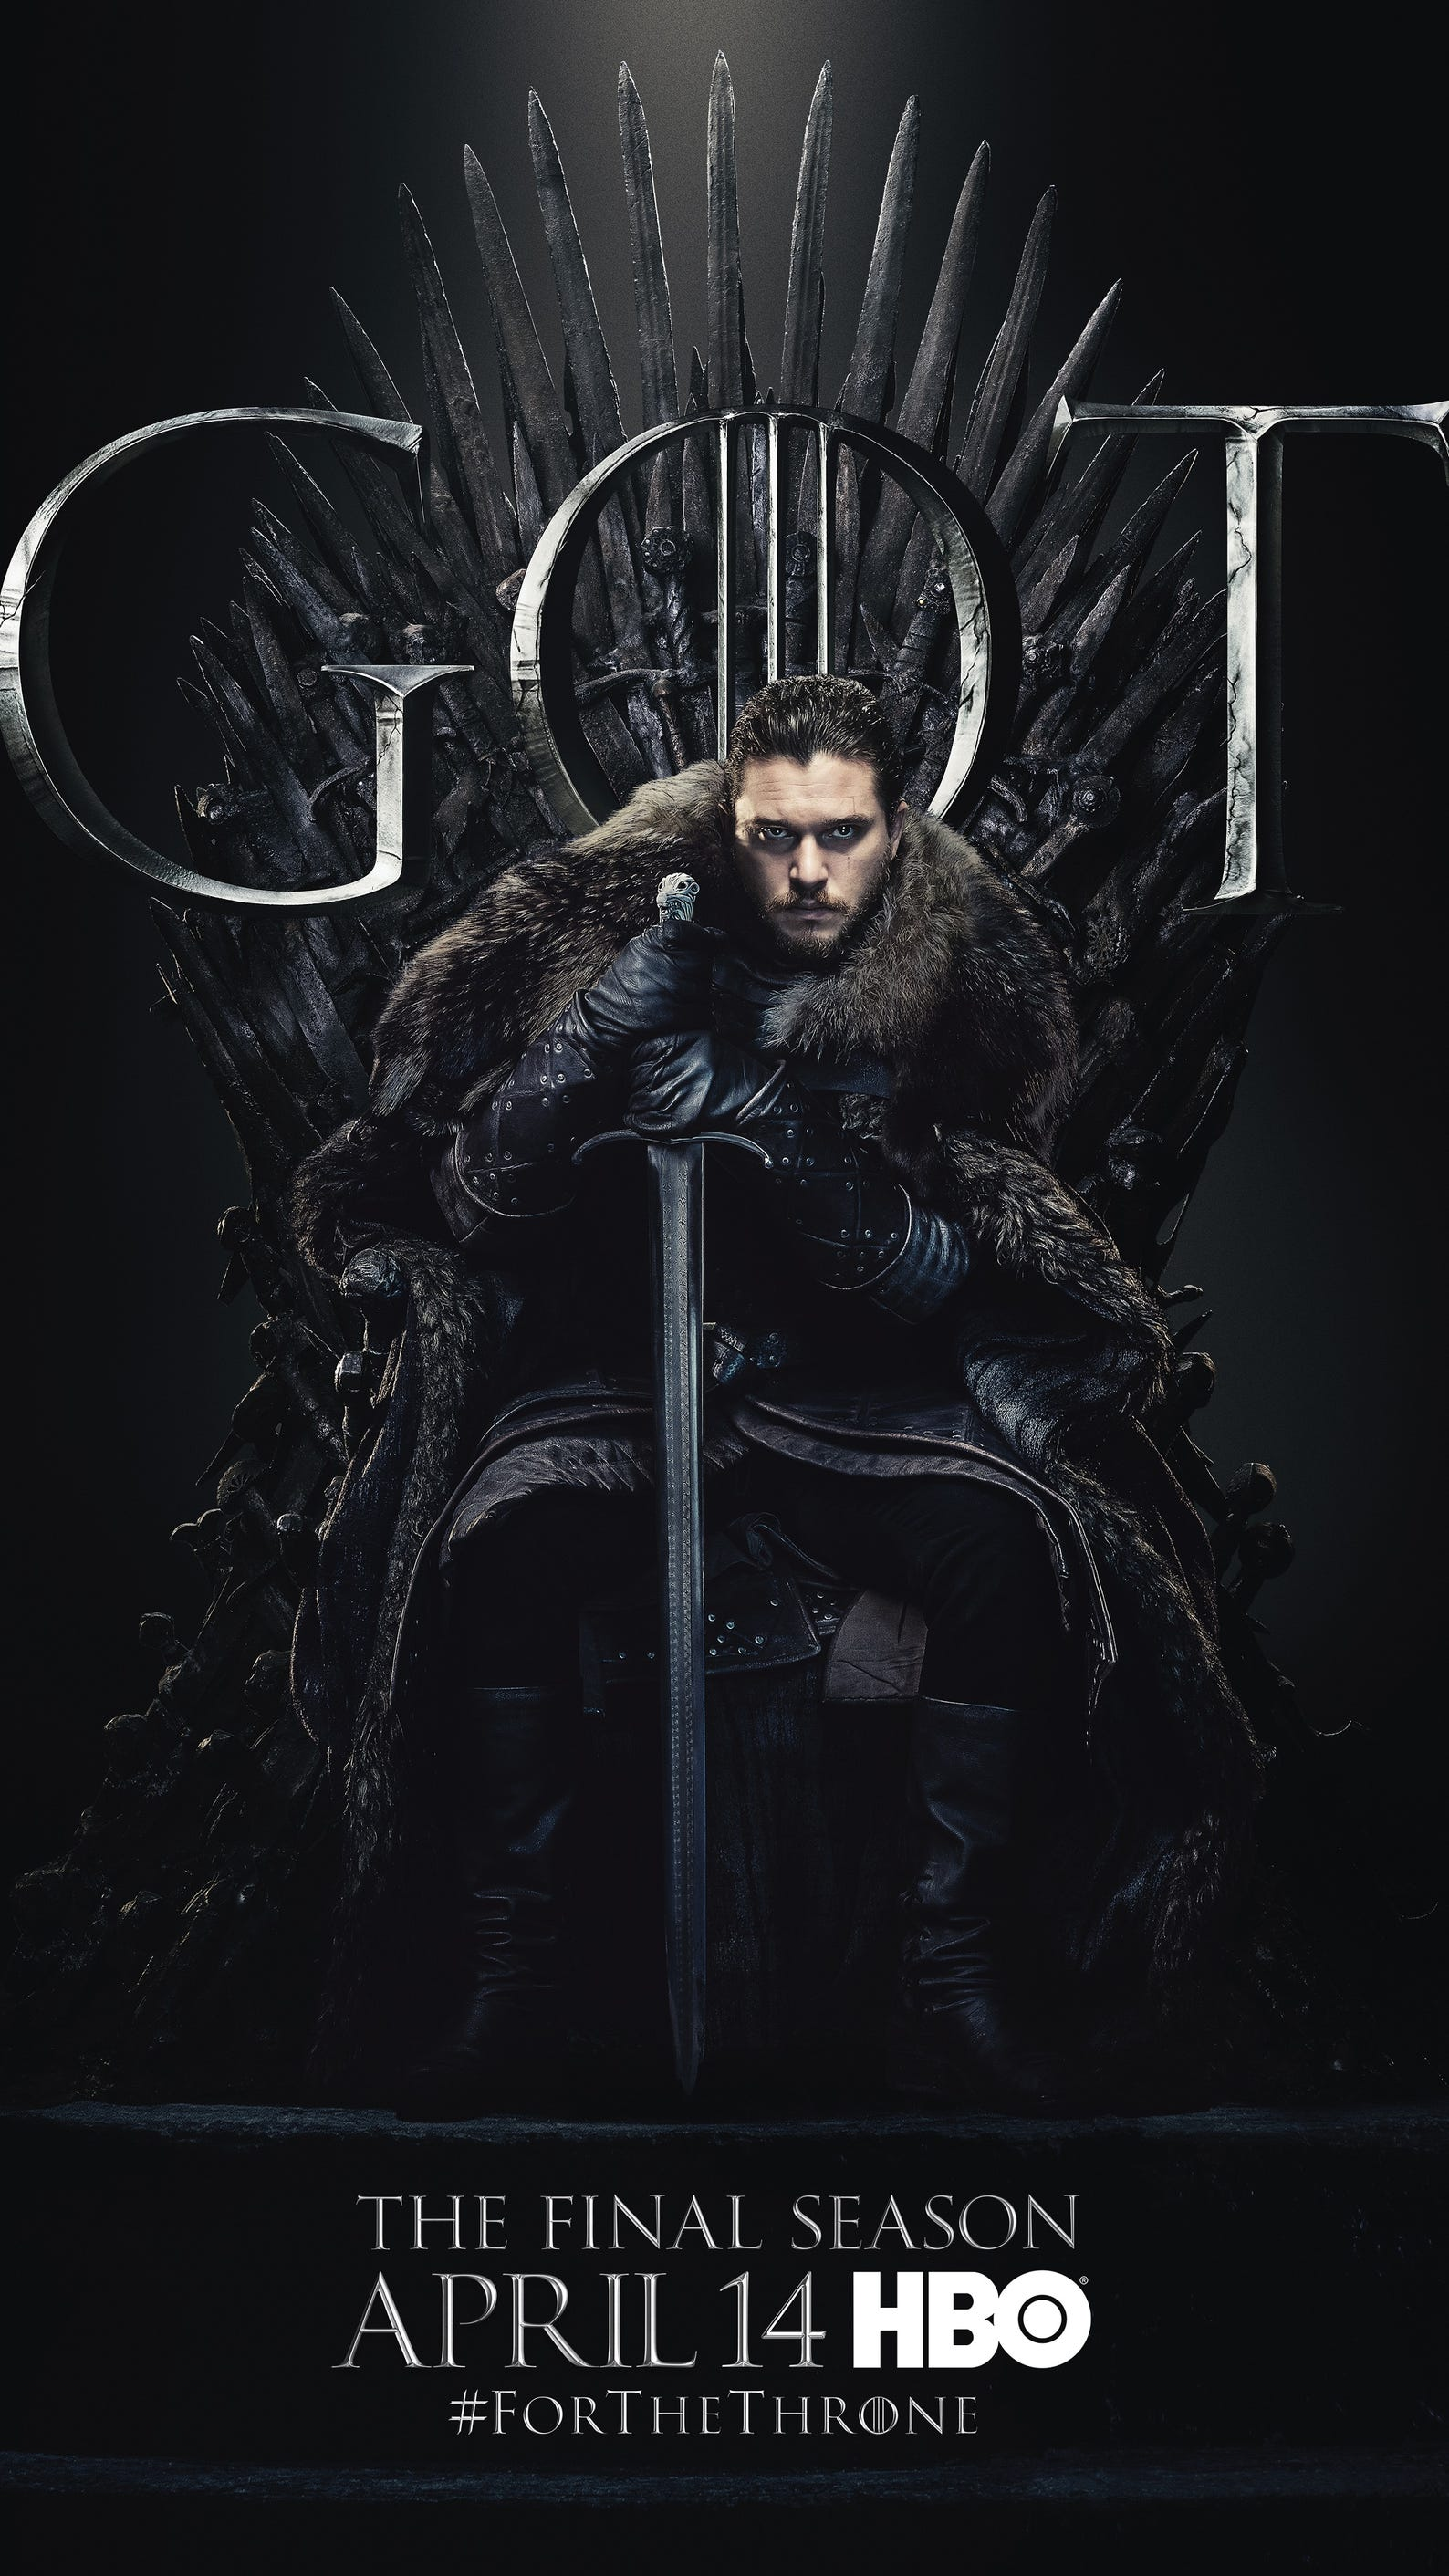 See Games Of Thrones Characters On The Iron Throne In